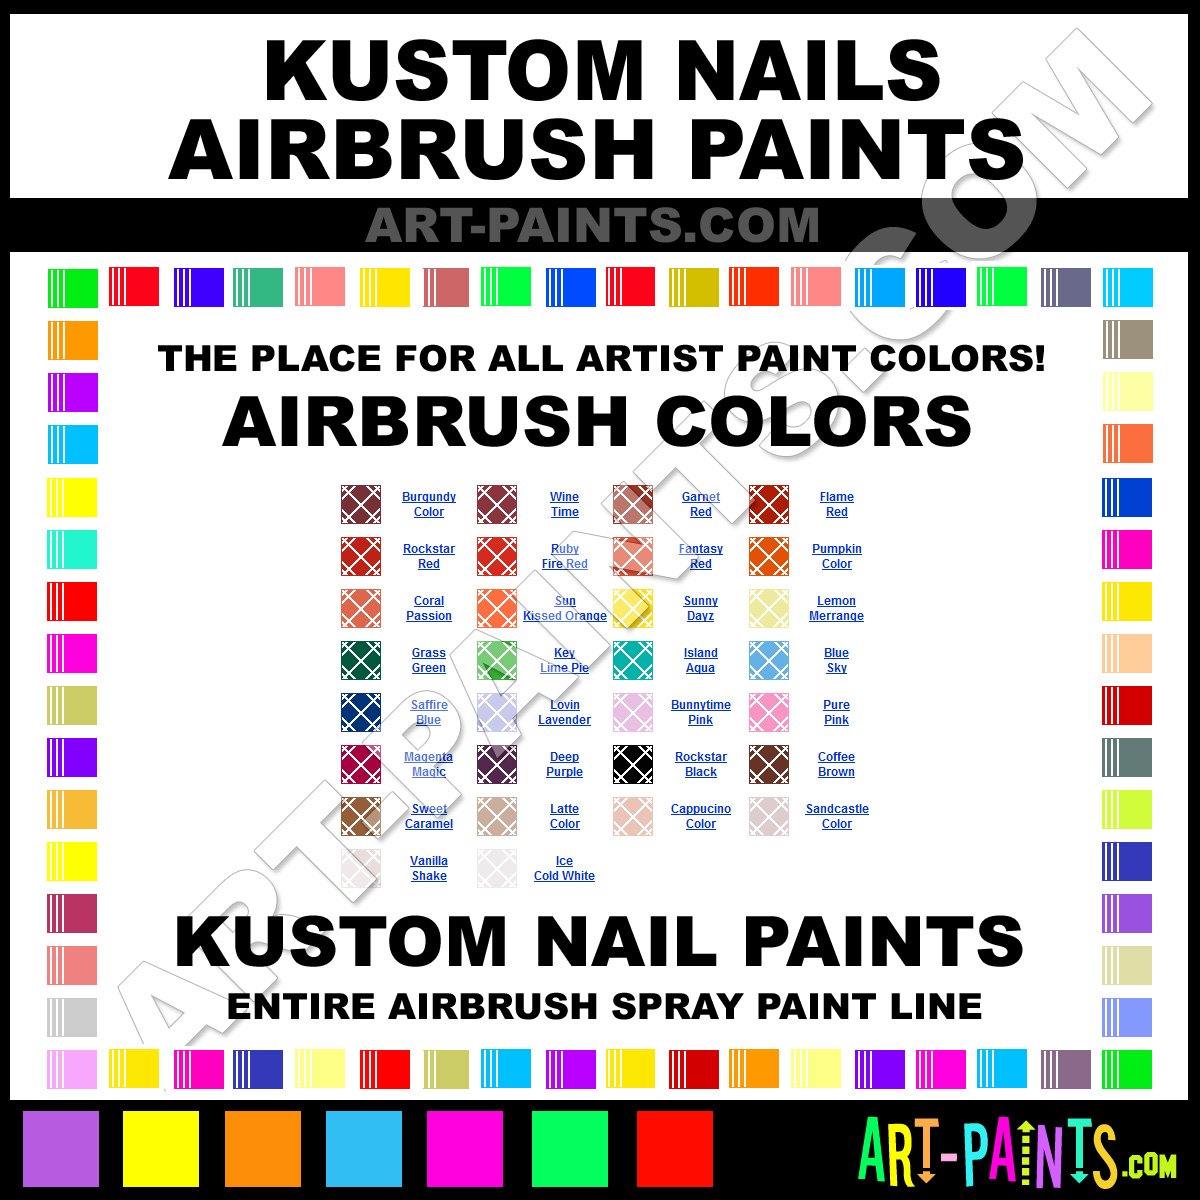 download this Kustom Nails Airbrush Spray Paint Brands picture